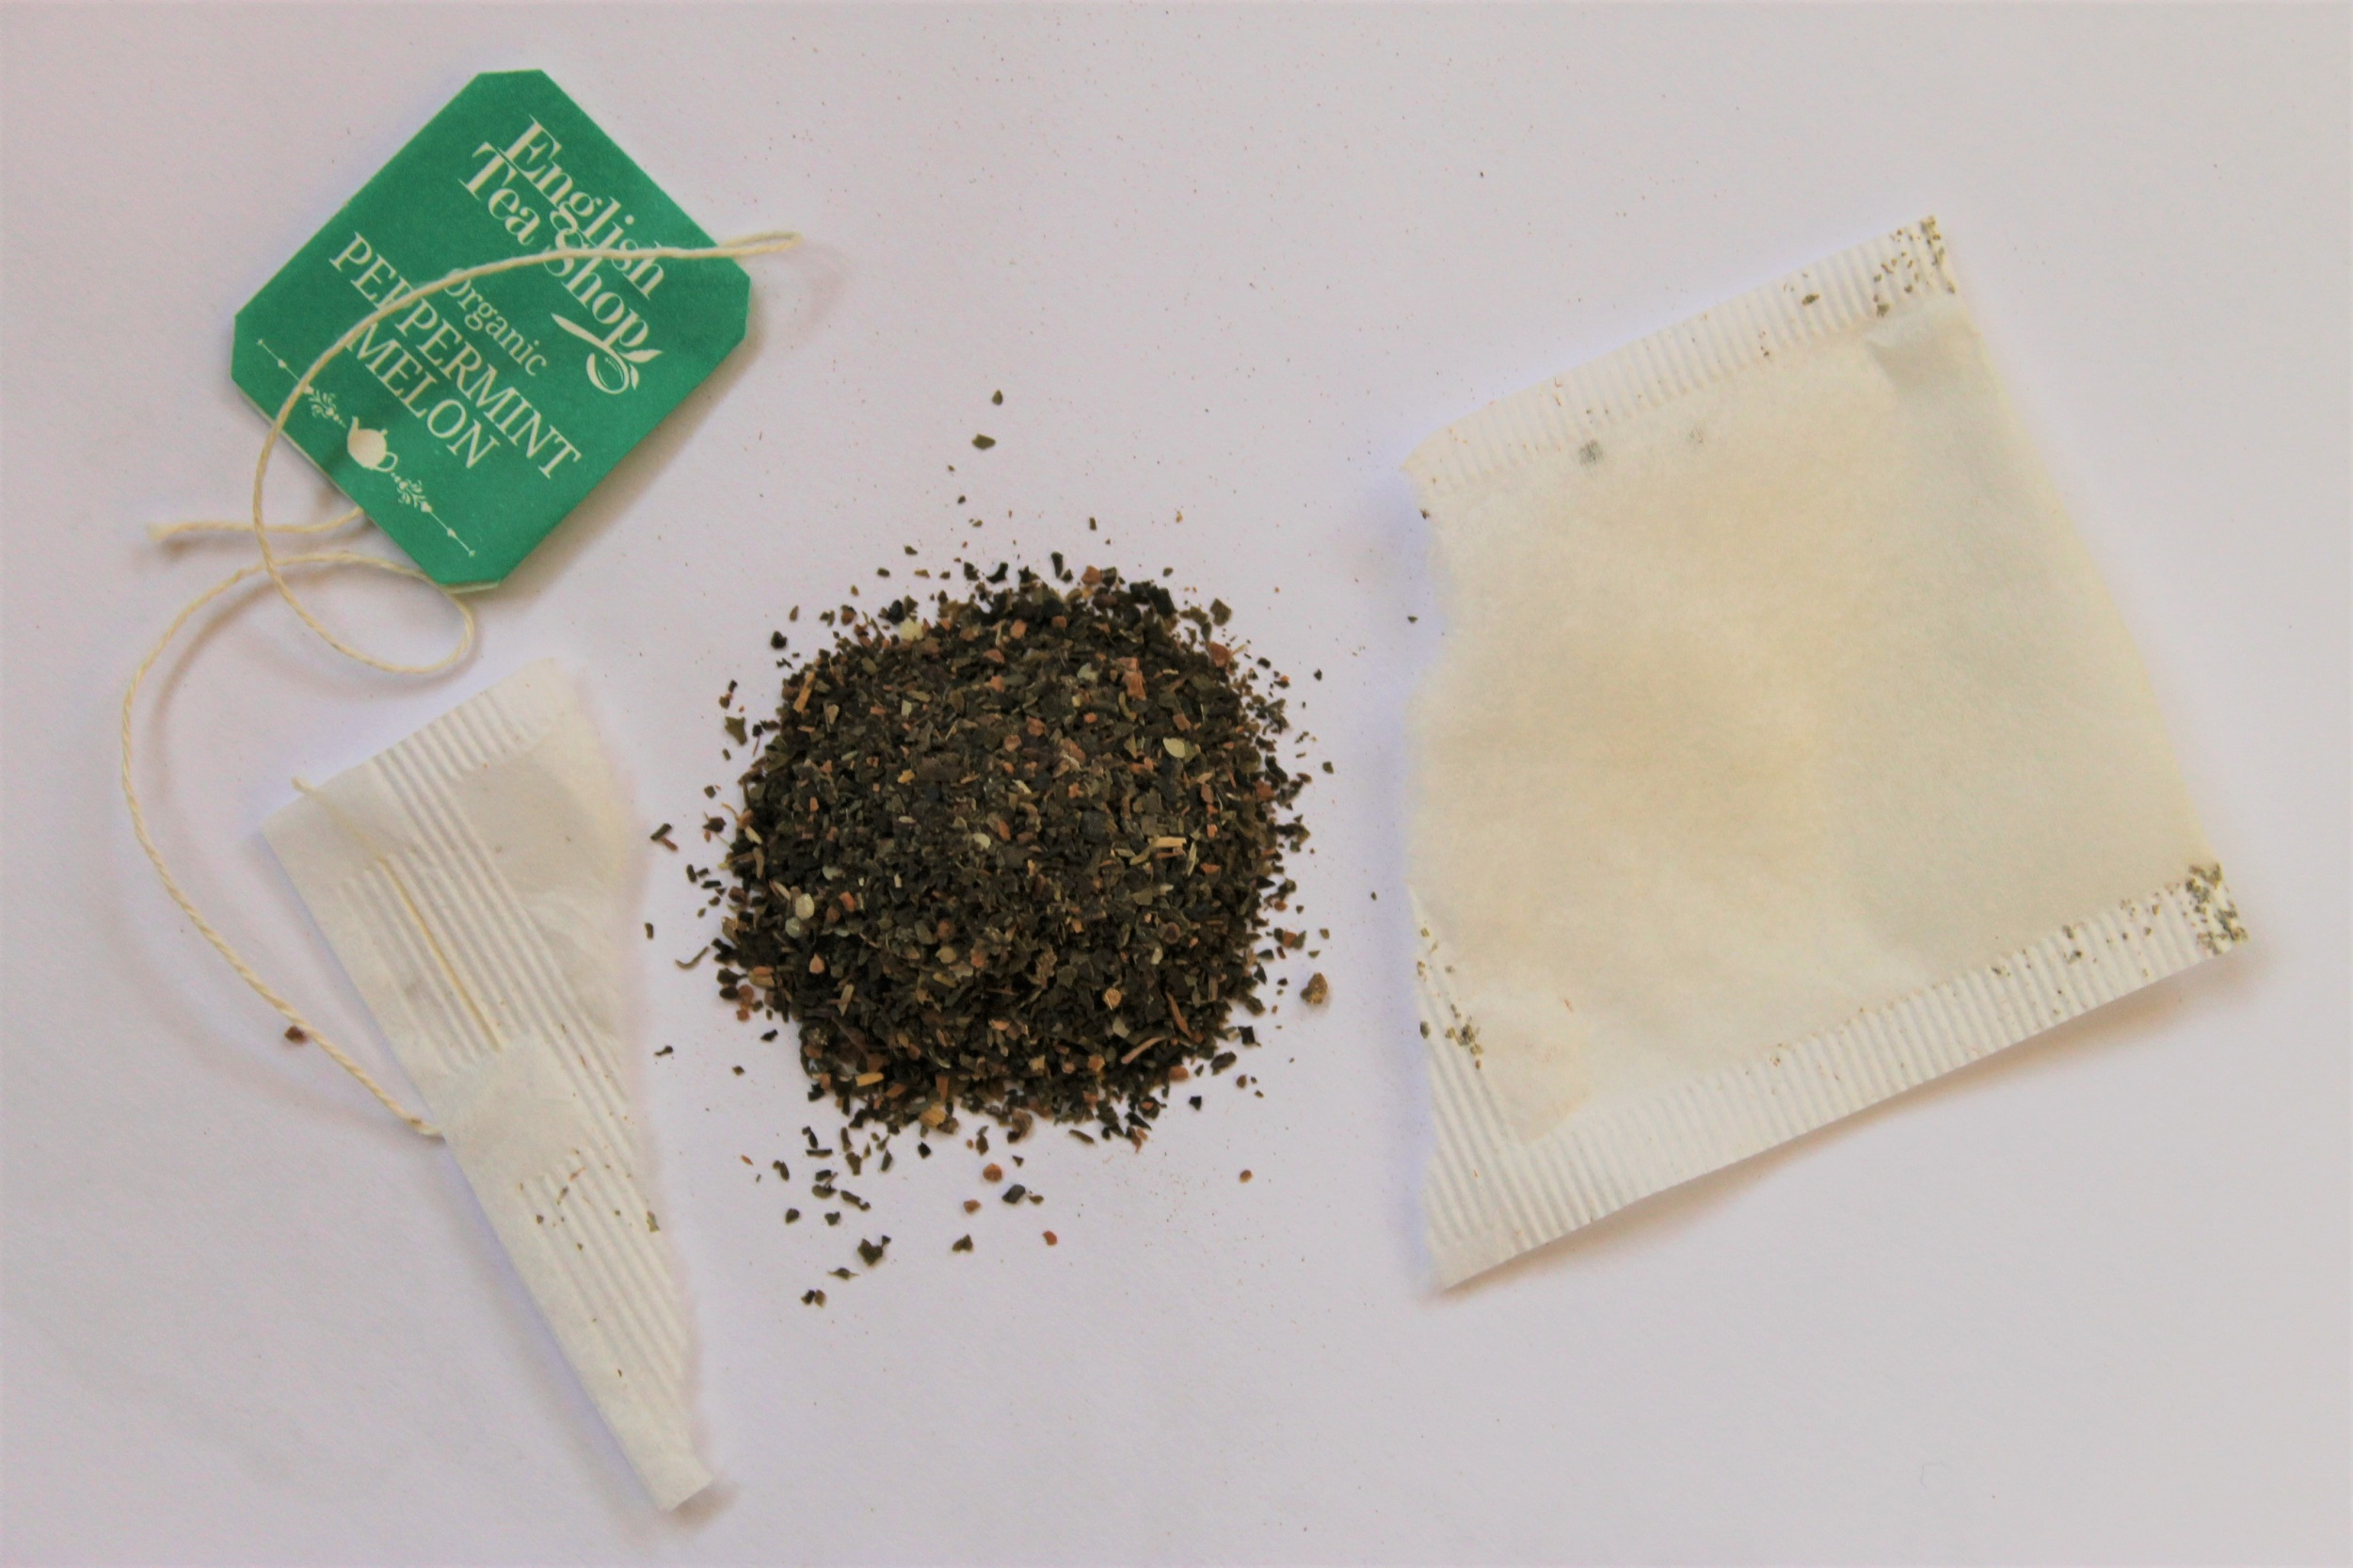 peppermint leaf melon flavouring tea bag